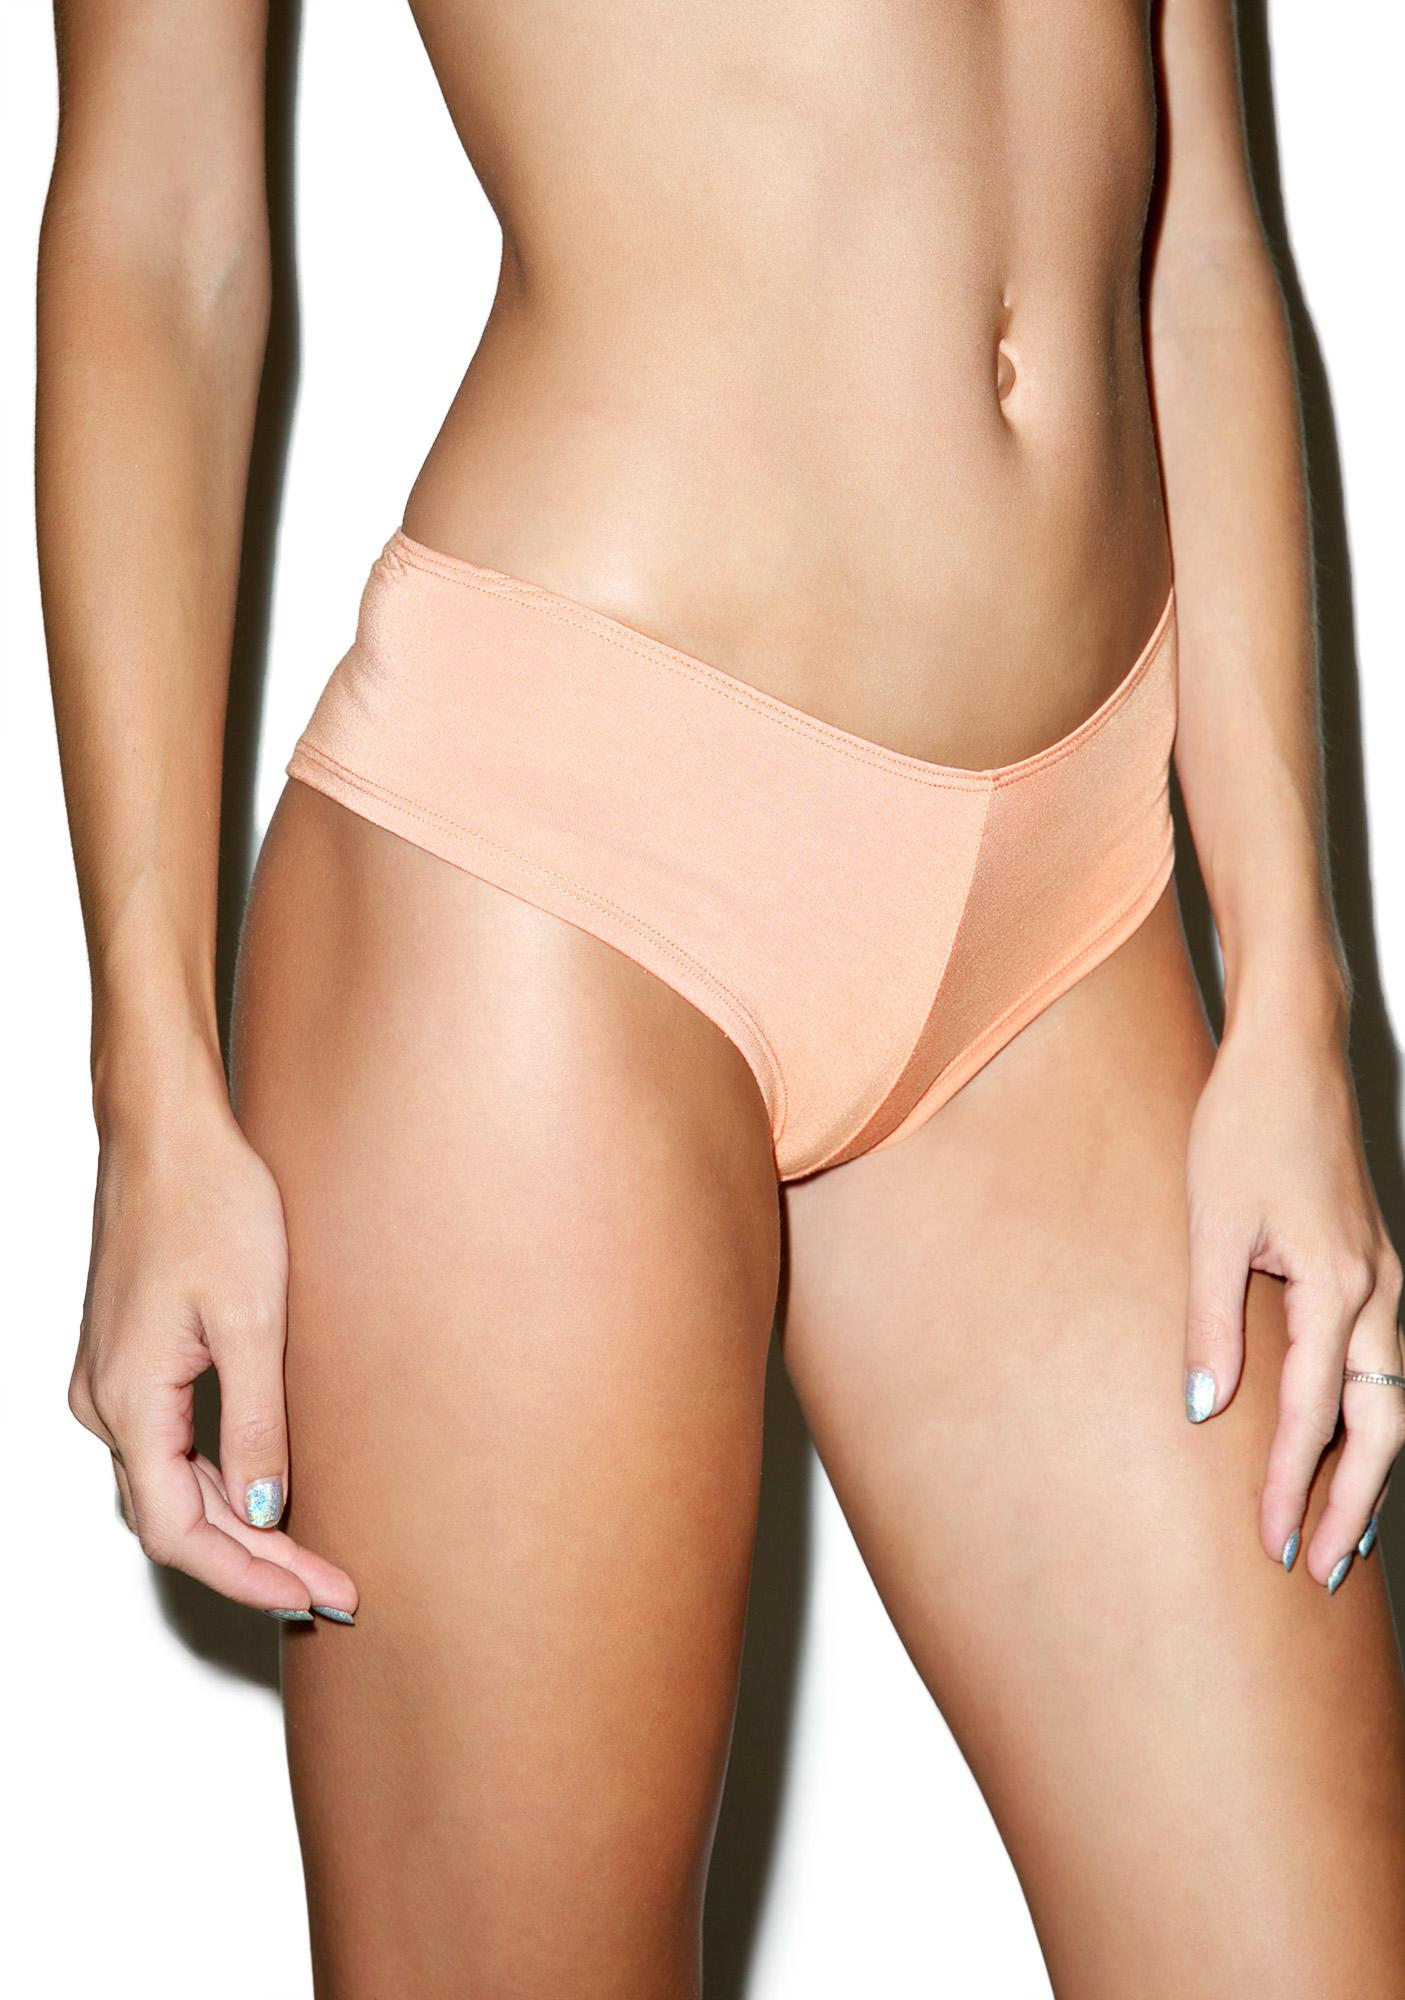 Olympia Theodora Creamsicle Boy Short